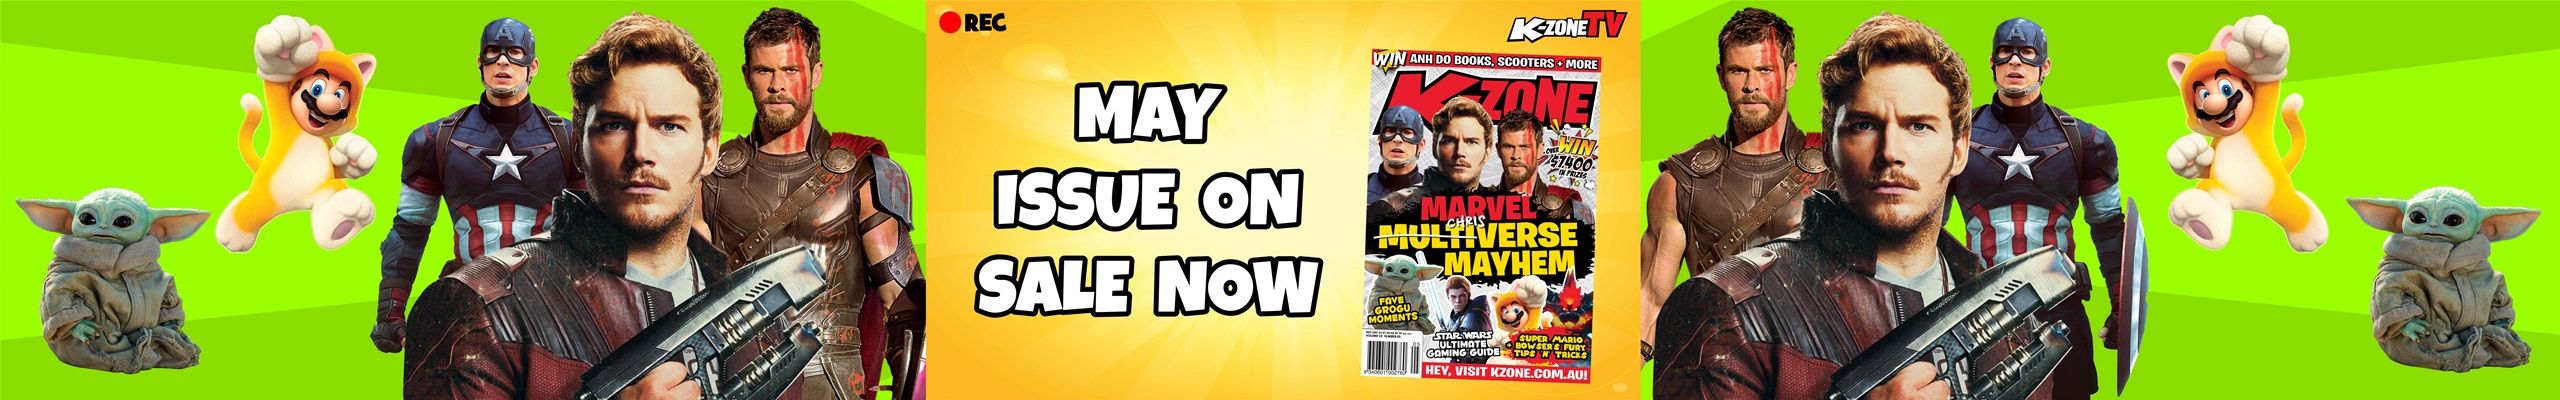 K-Zone May Issue Teaser: Marvel Multiverse Mayhem